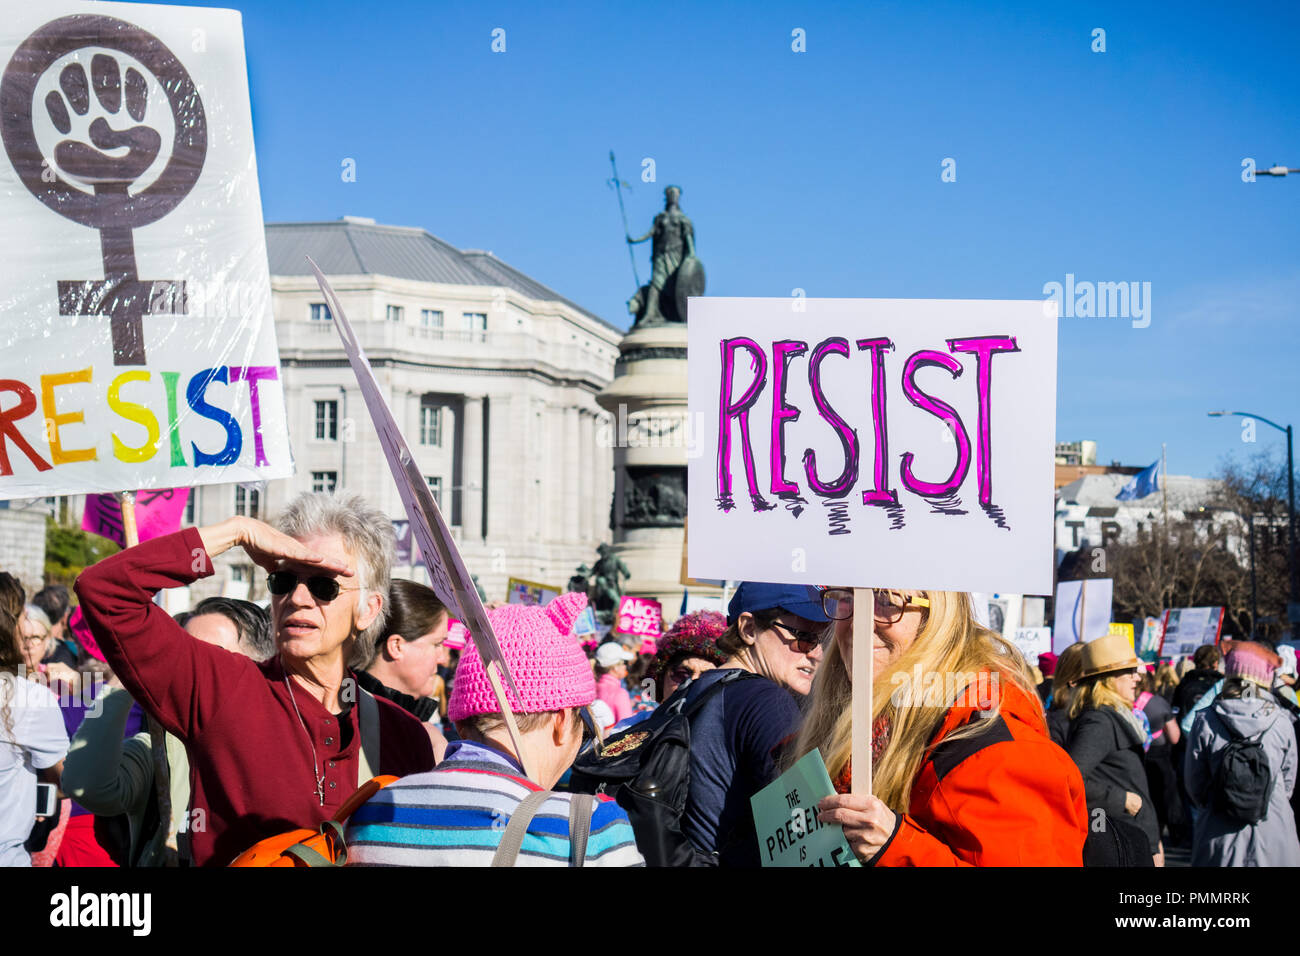 January 20, 2018 San Francisco / CA / USA - Resist signs carried at the Women's March - Stock Image